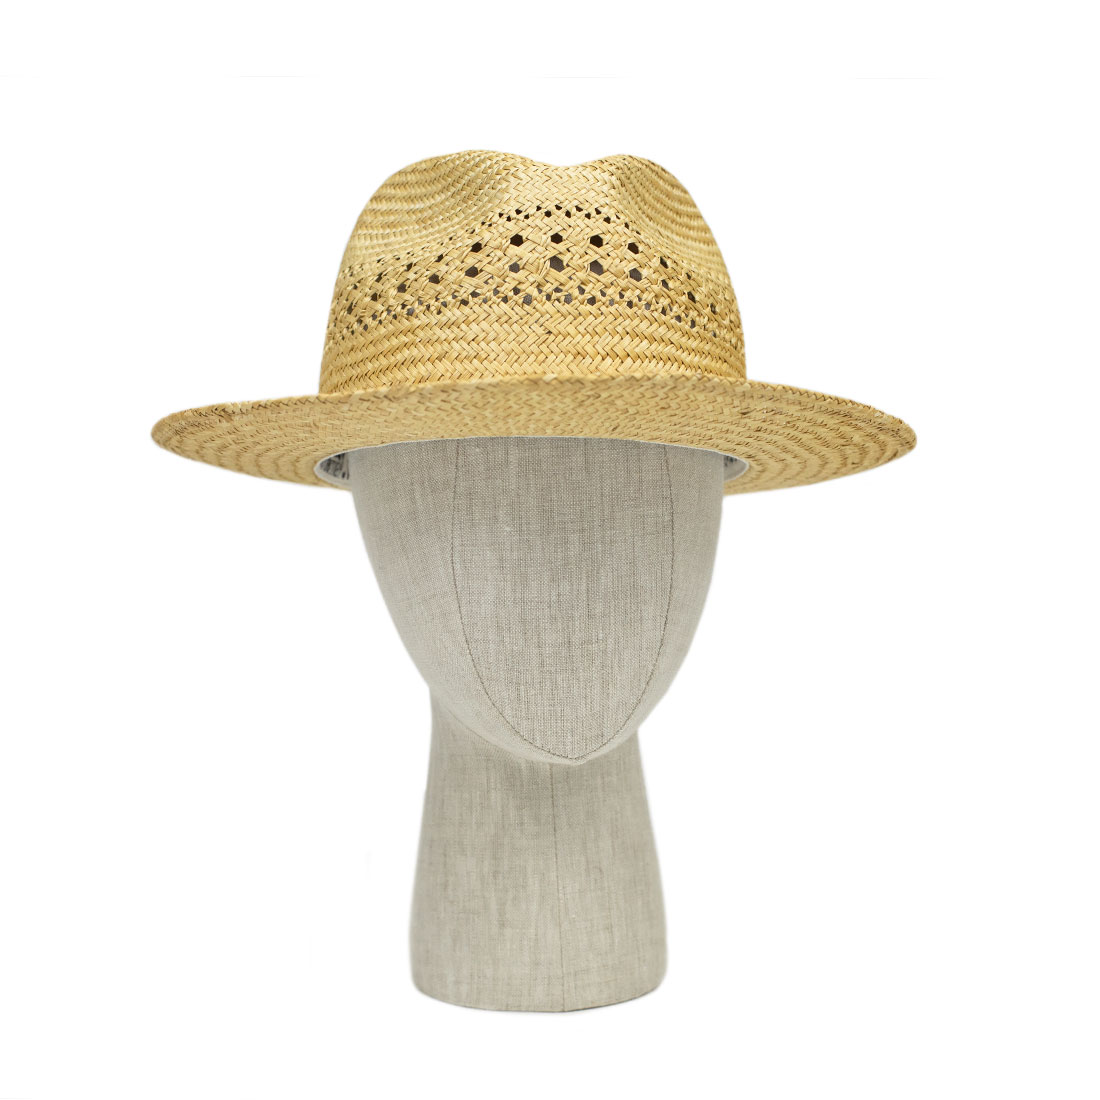 Sublime Hats Made in Japan Spring Summer 2021 SS21 Sobo Hat Straw Hat  (1).jpg